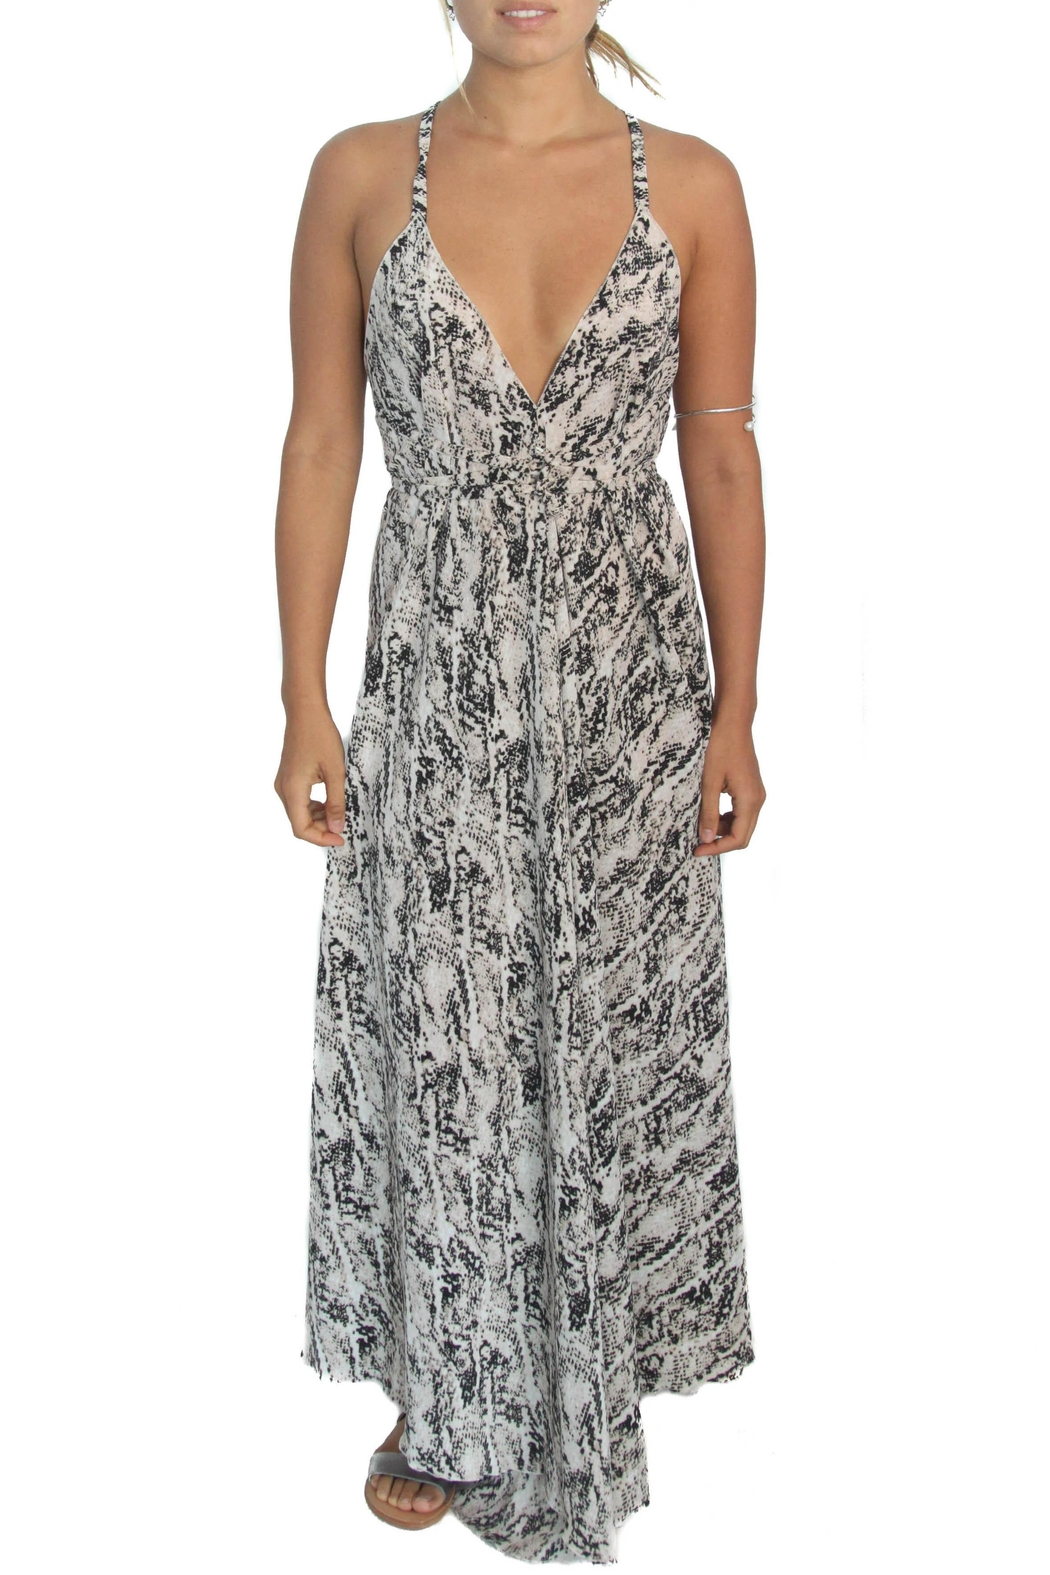 LOVEleigh Noosa Dress Nude - Front Cropped Image